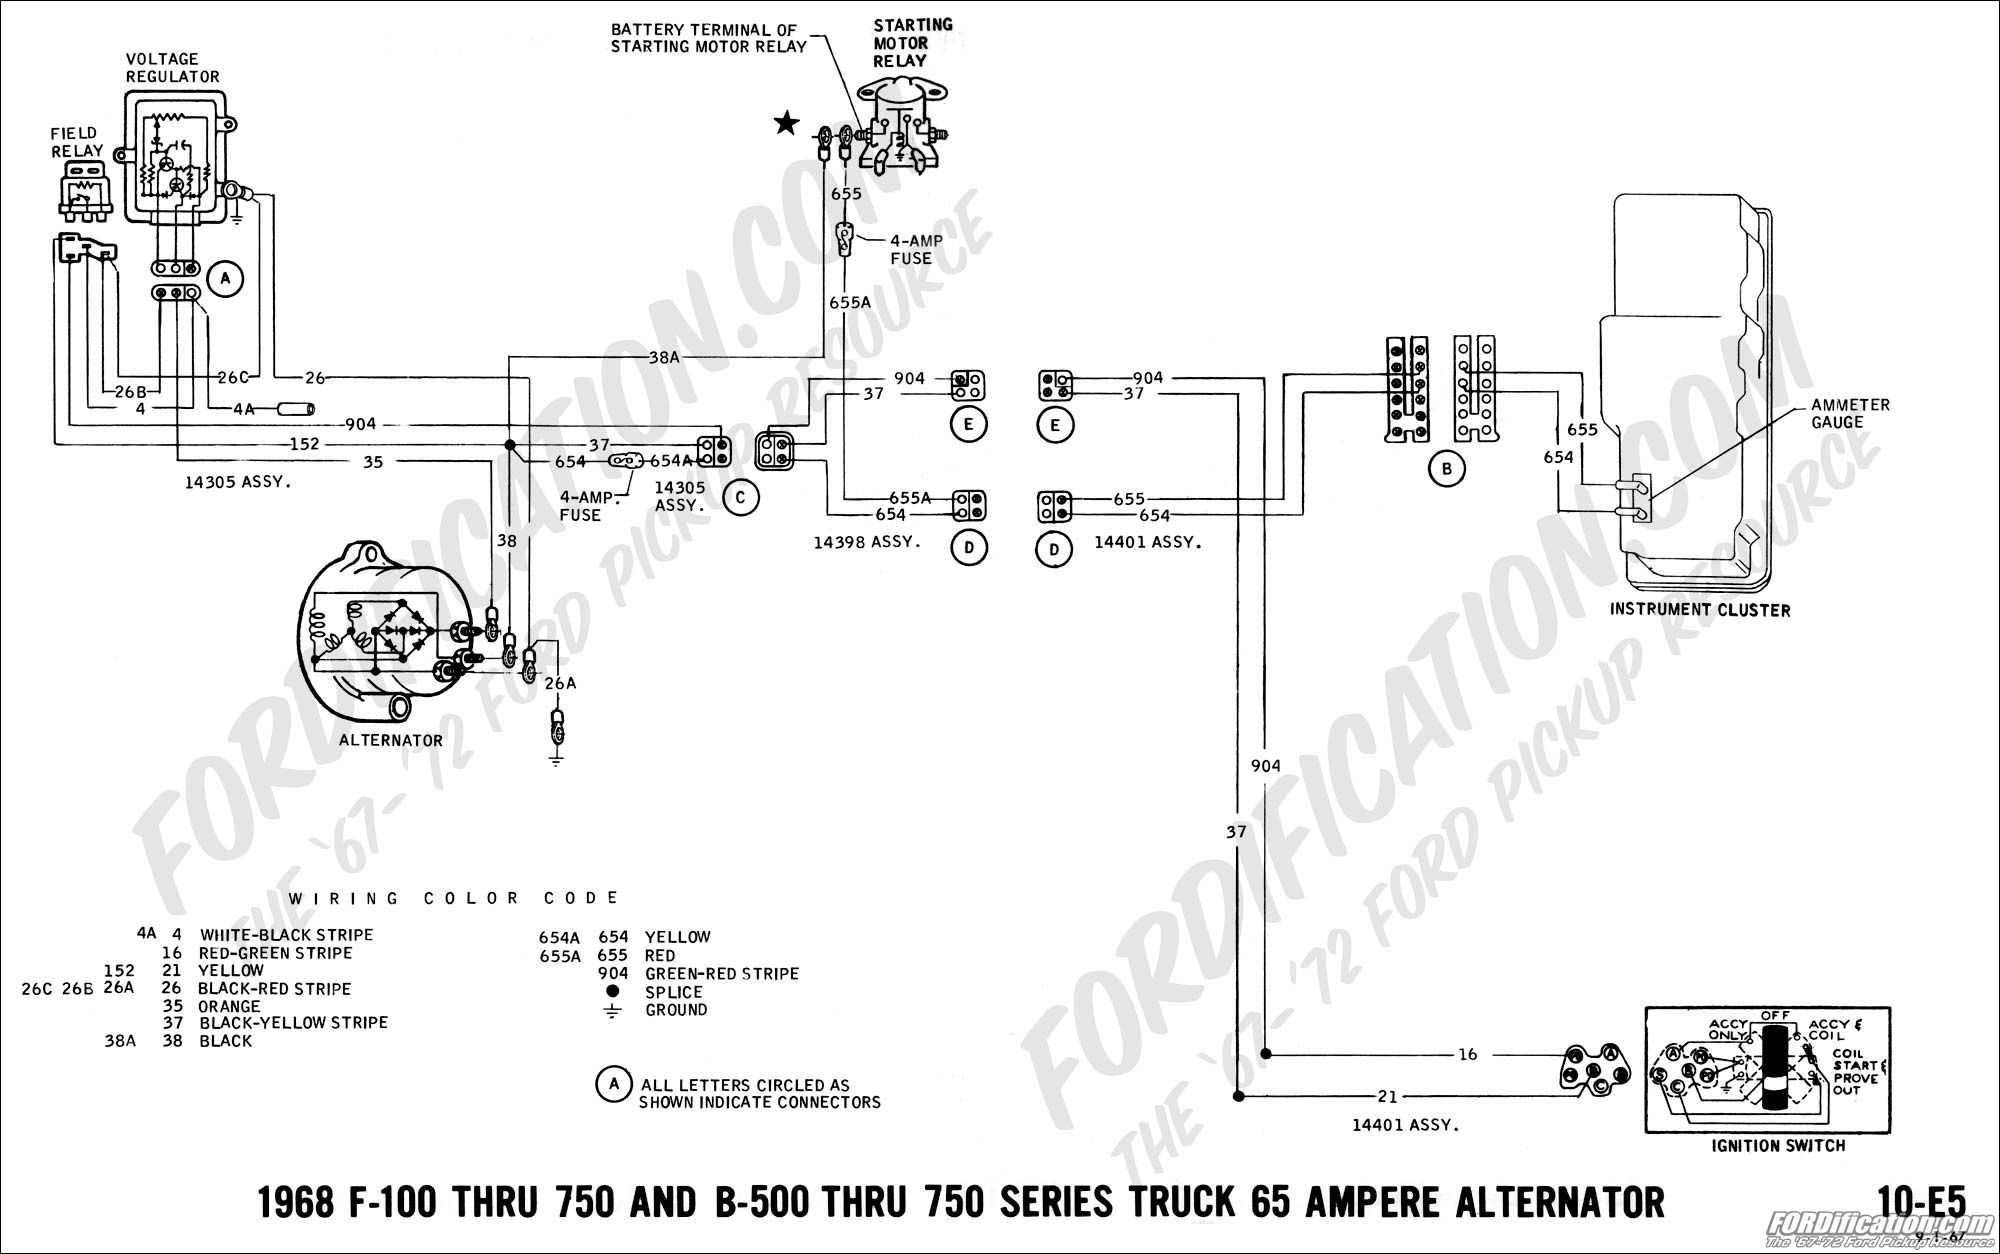 2g alt wire diagram wiring diagram schematics simple alternator wiring  diagram 1956 ford alternator wiring diagram